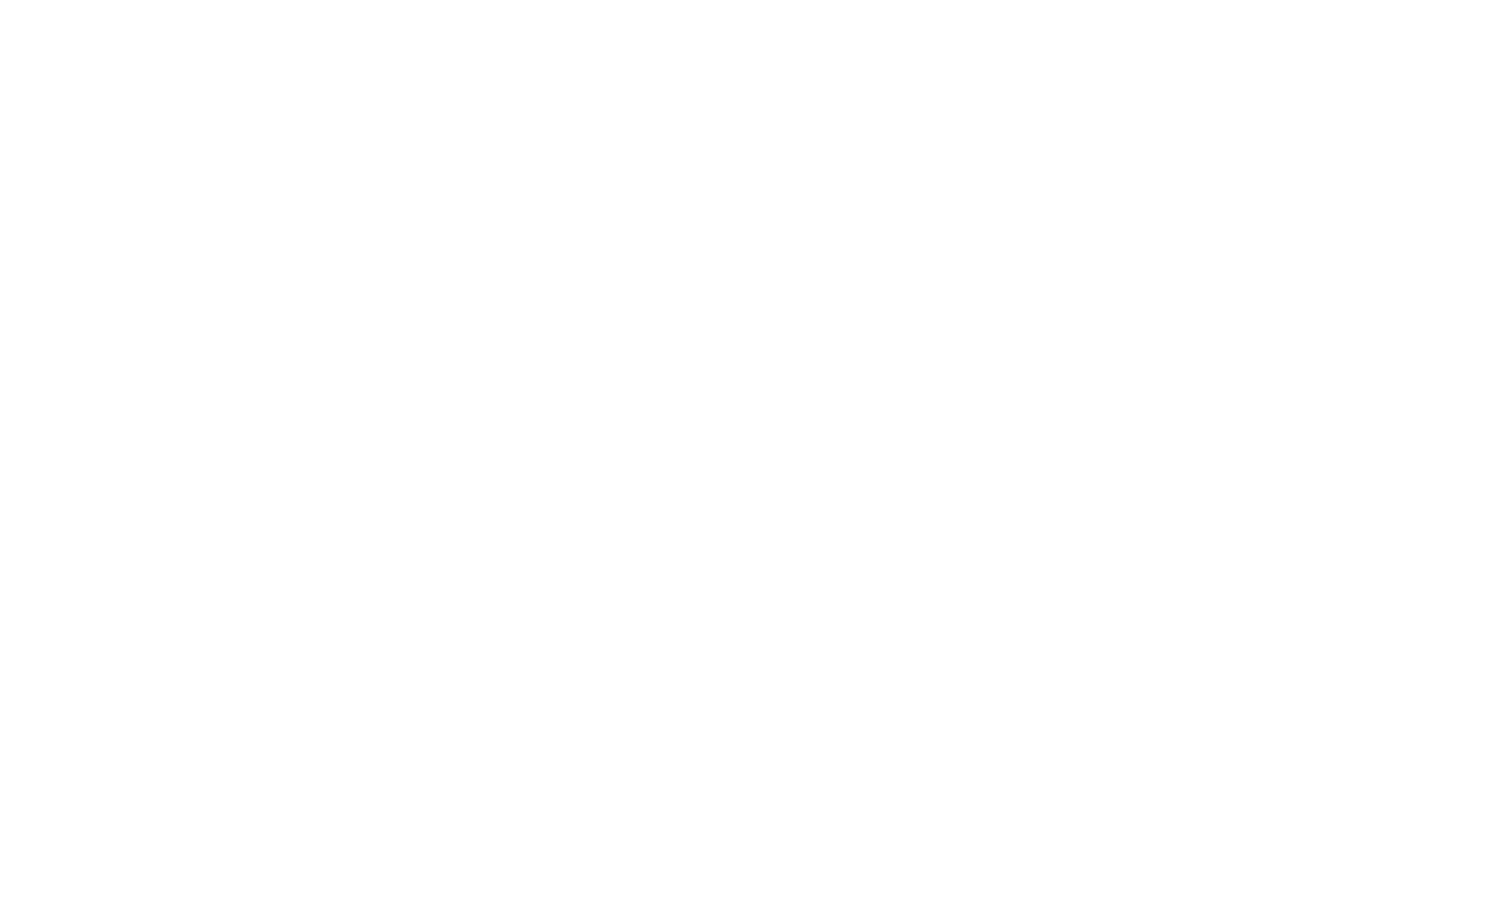 The Bath Project